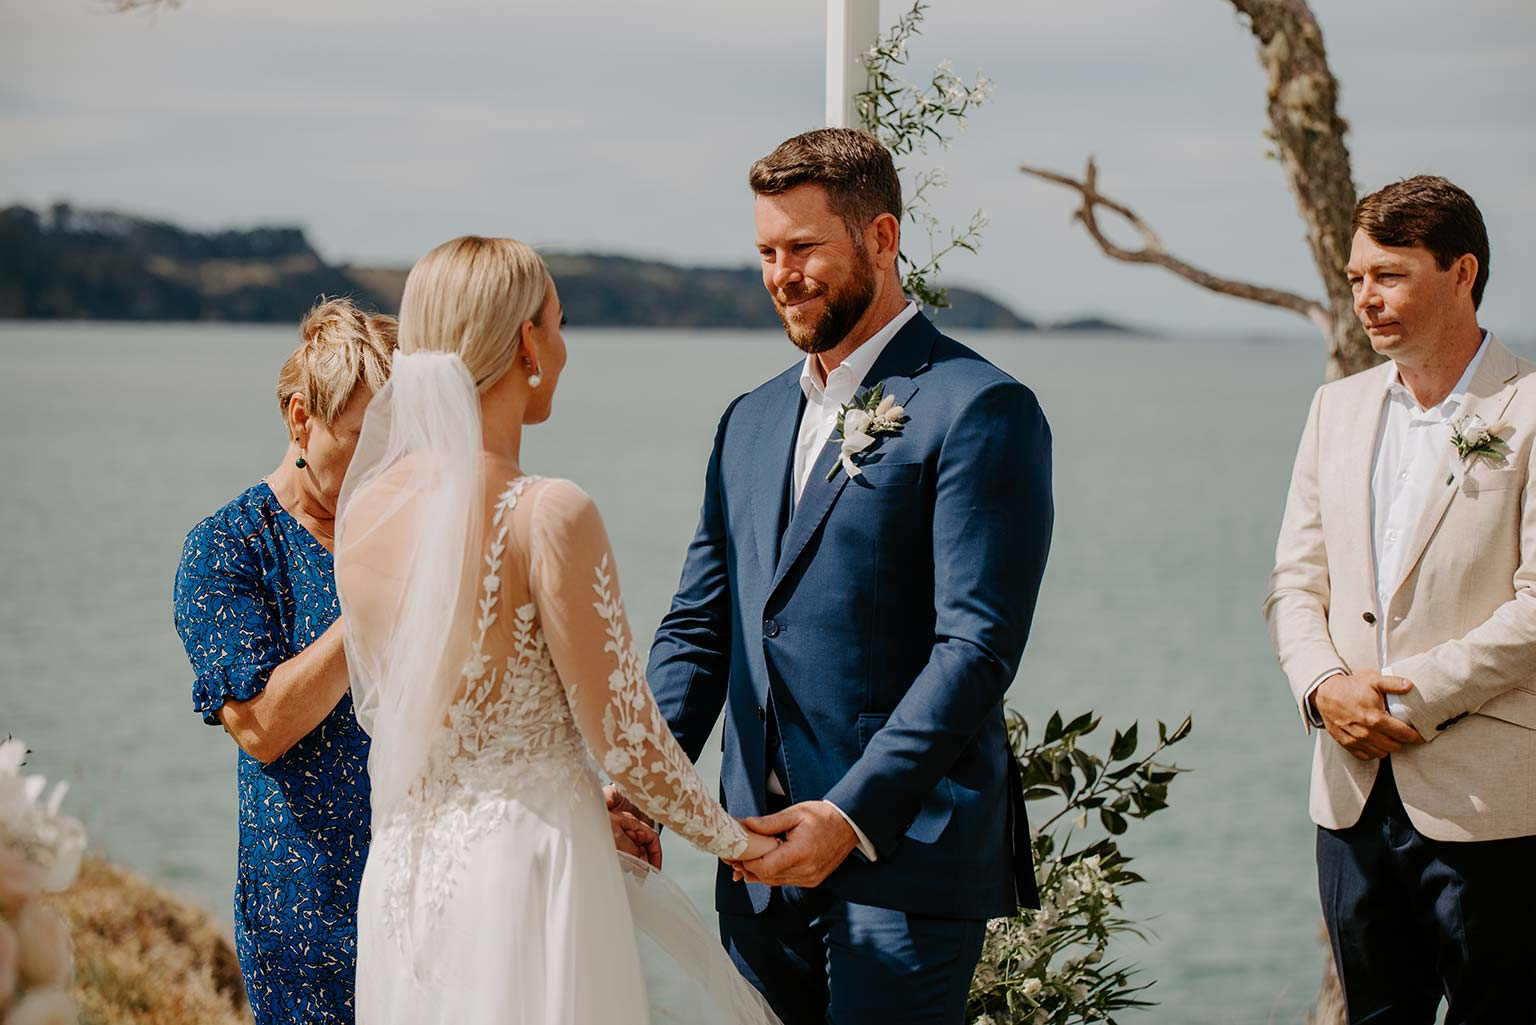 Vinka Design Features Real Weddings - bride and groom take their vows - bride wearing a bespoke Makaira gown with silk-chiffon and tulle overskirt giving her a beautiful train which could be removed later on to reveal a floor length party dress